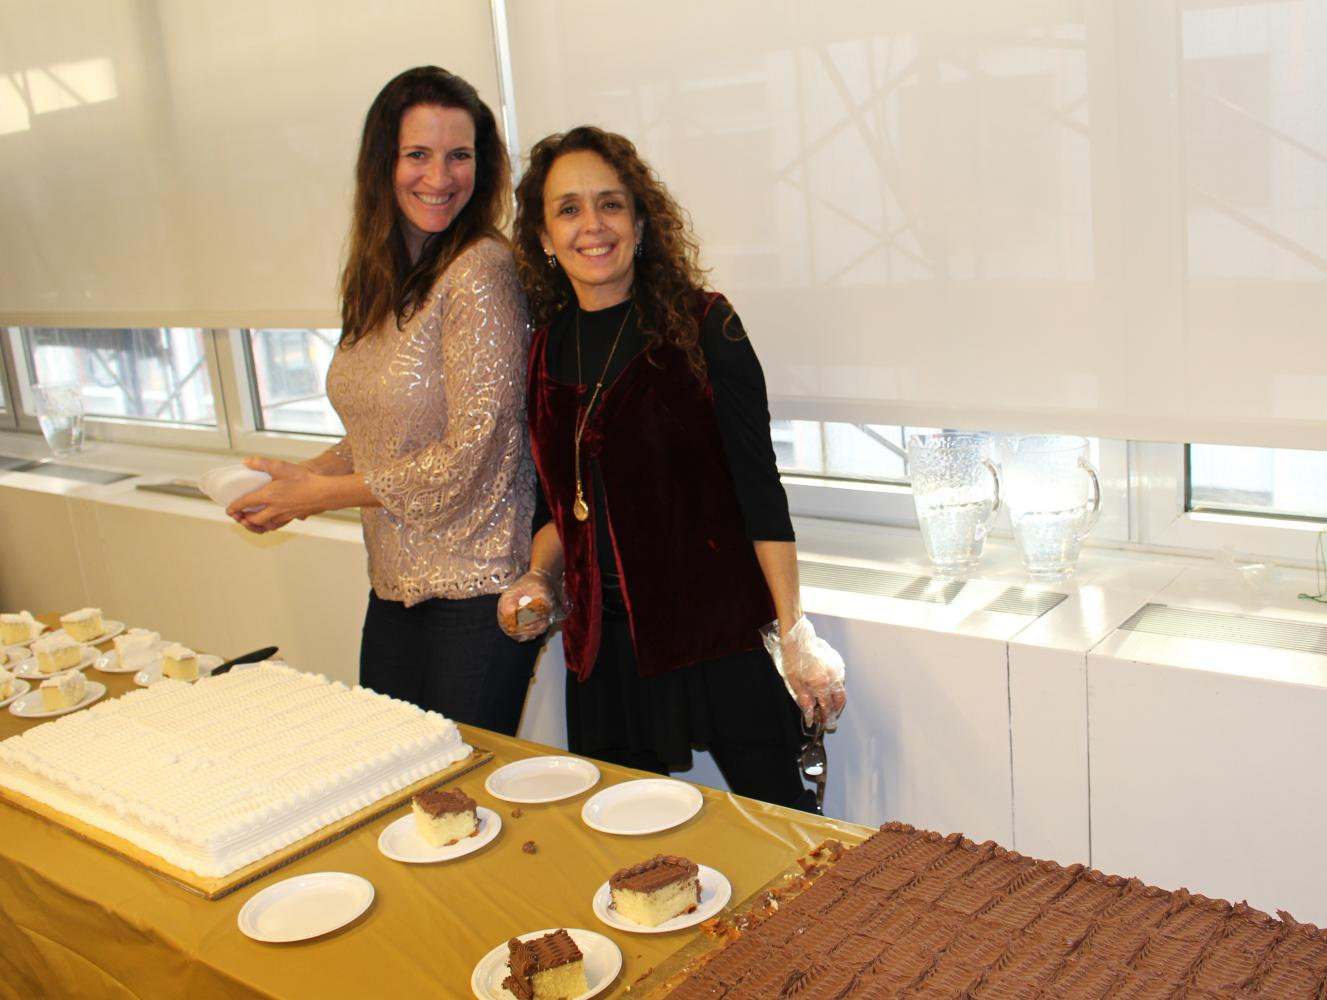 New York Host Committee members Molly Ballard and Jane Beller serve cake to members at the Holiday Open House.